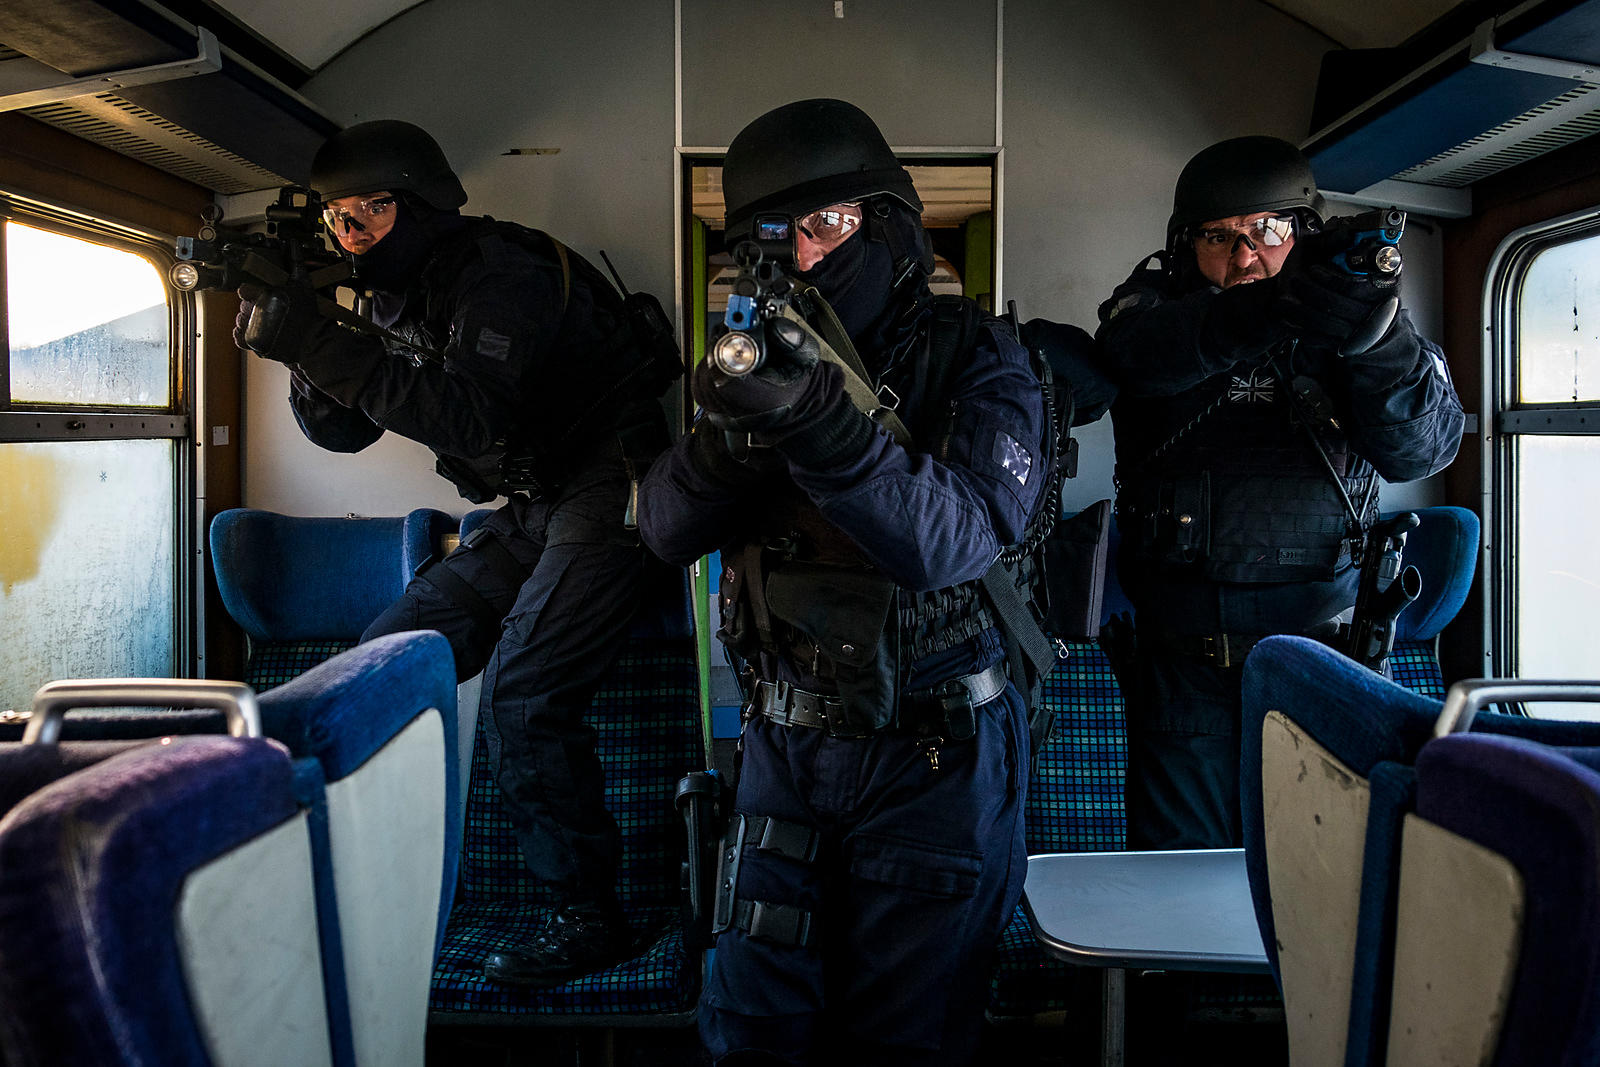 British Police Firearms Training. Storming a Train.